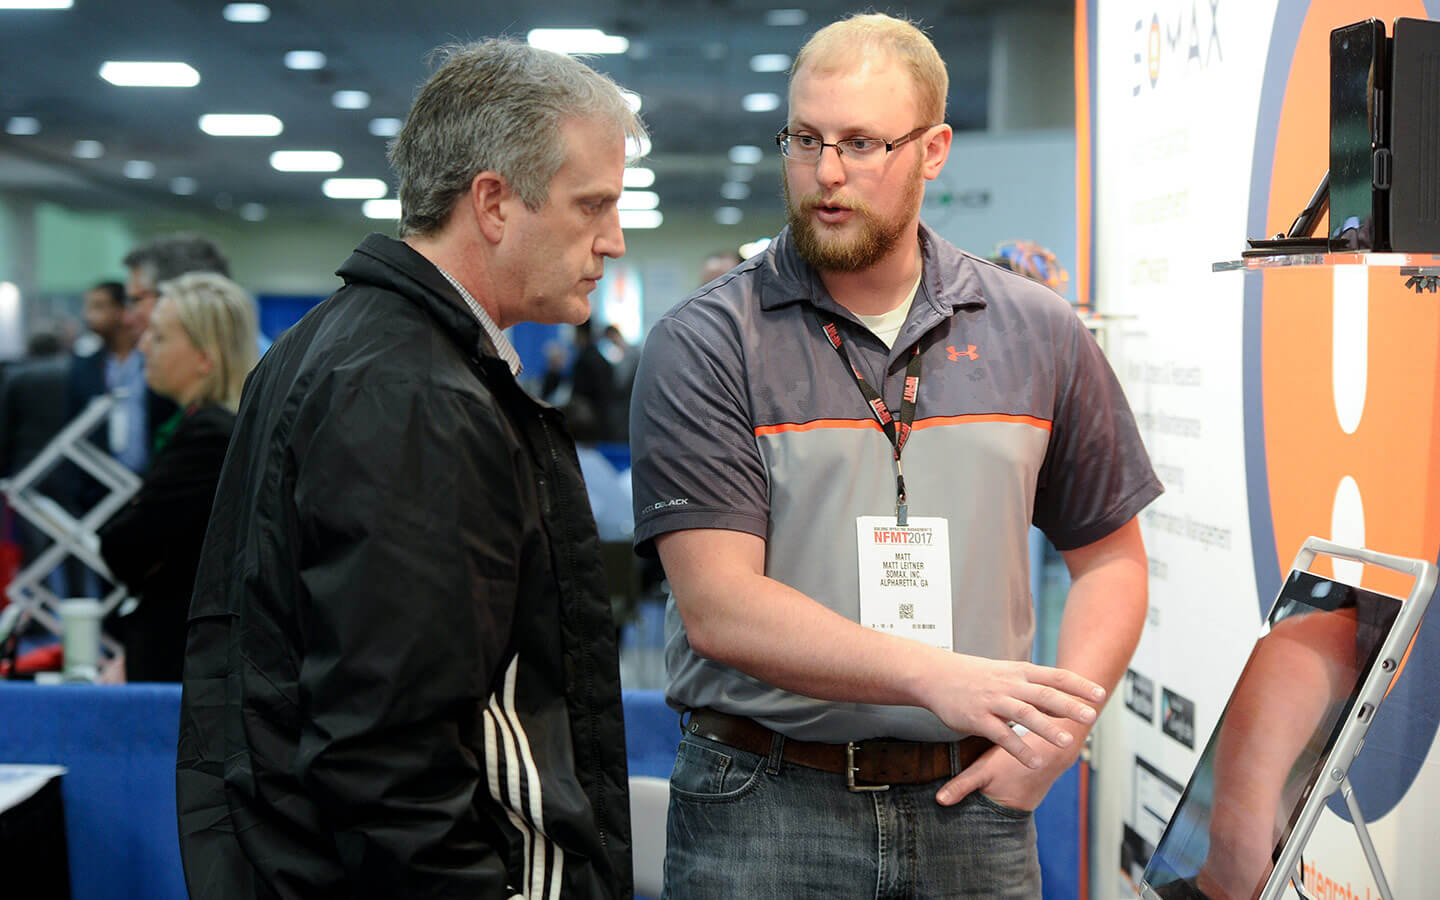 NFMT Exhibitor showing man a screen